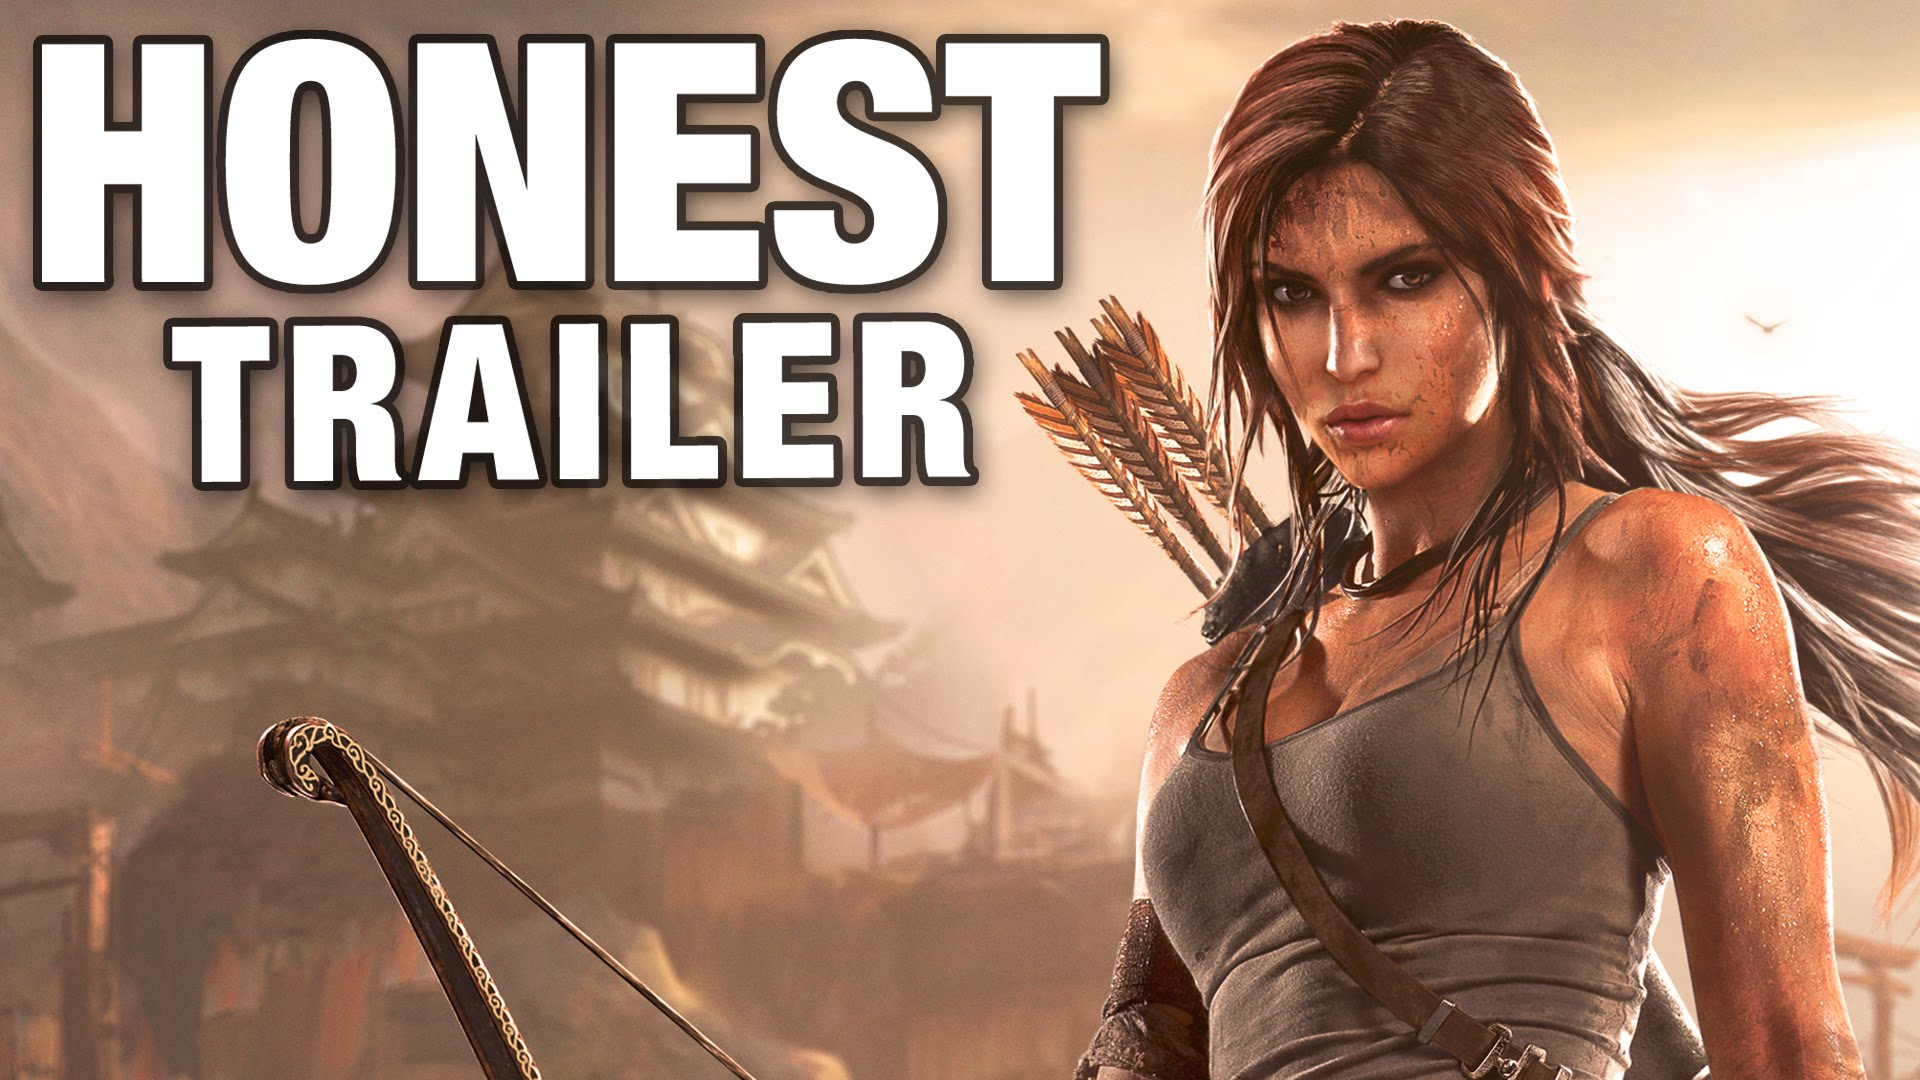 The Tomb Raider Franchise Gets The Honest Trailer Treatment